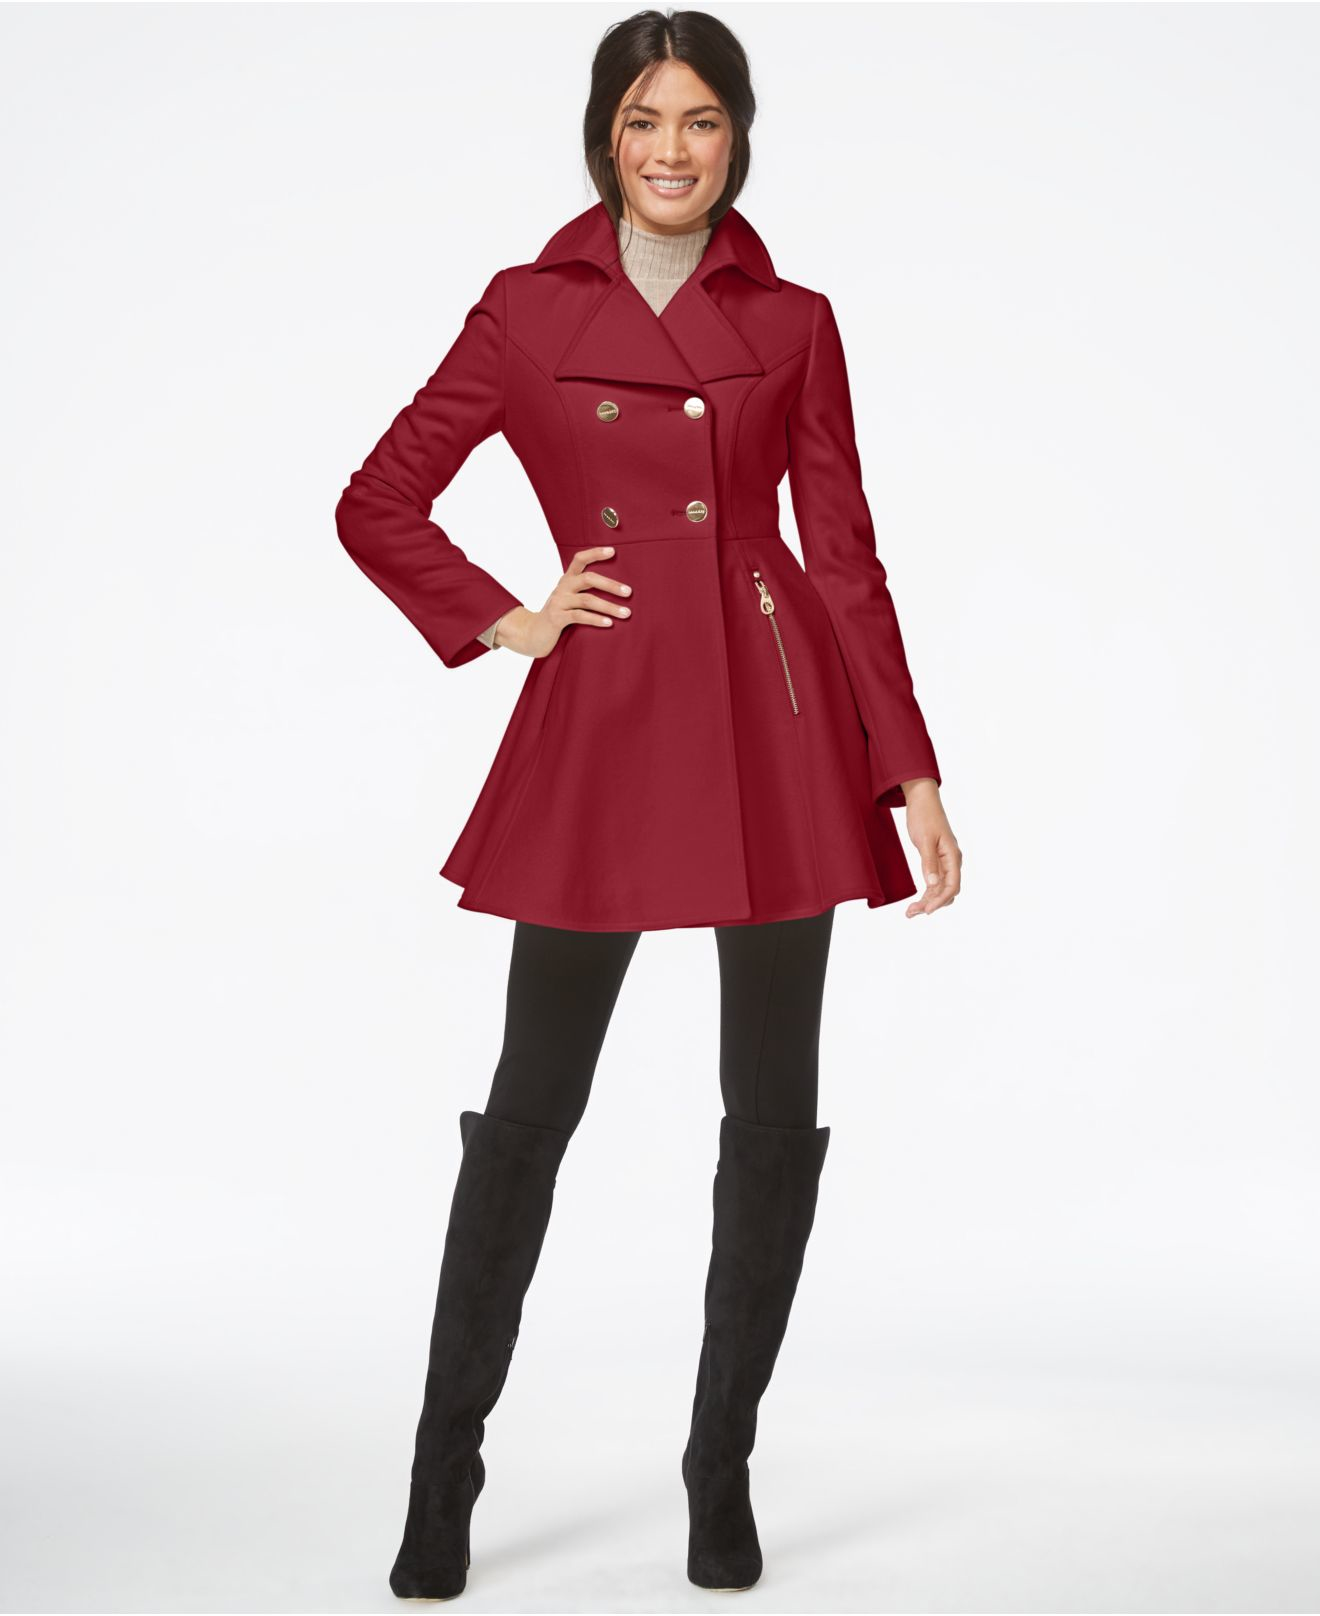 Laundry by shelli segal Petite Double-breasted Flared Peacoat in ...